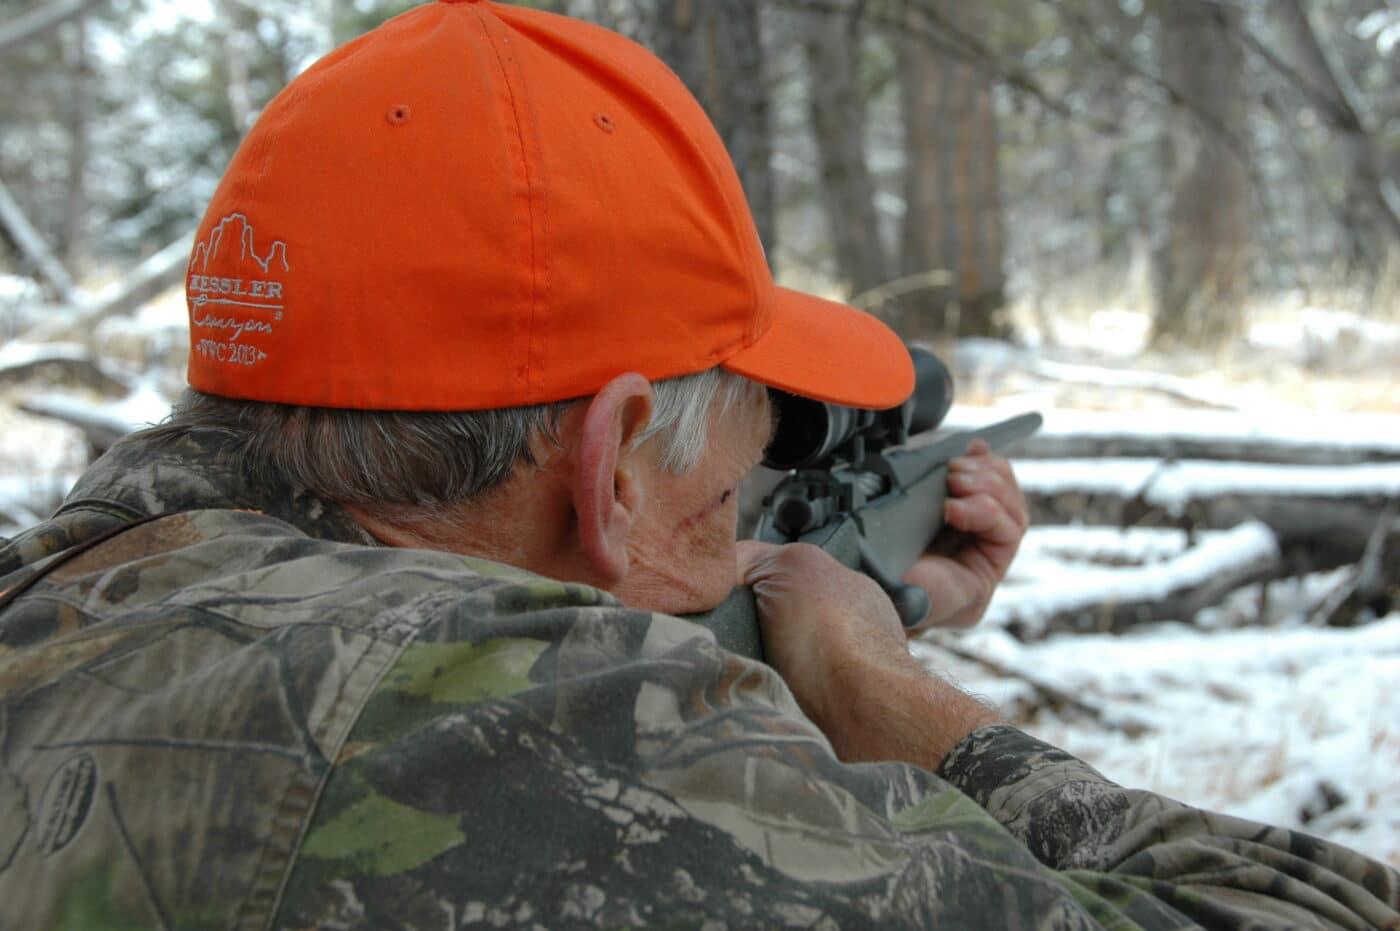 Man using a rifle scope for deer hunting